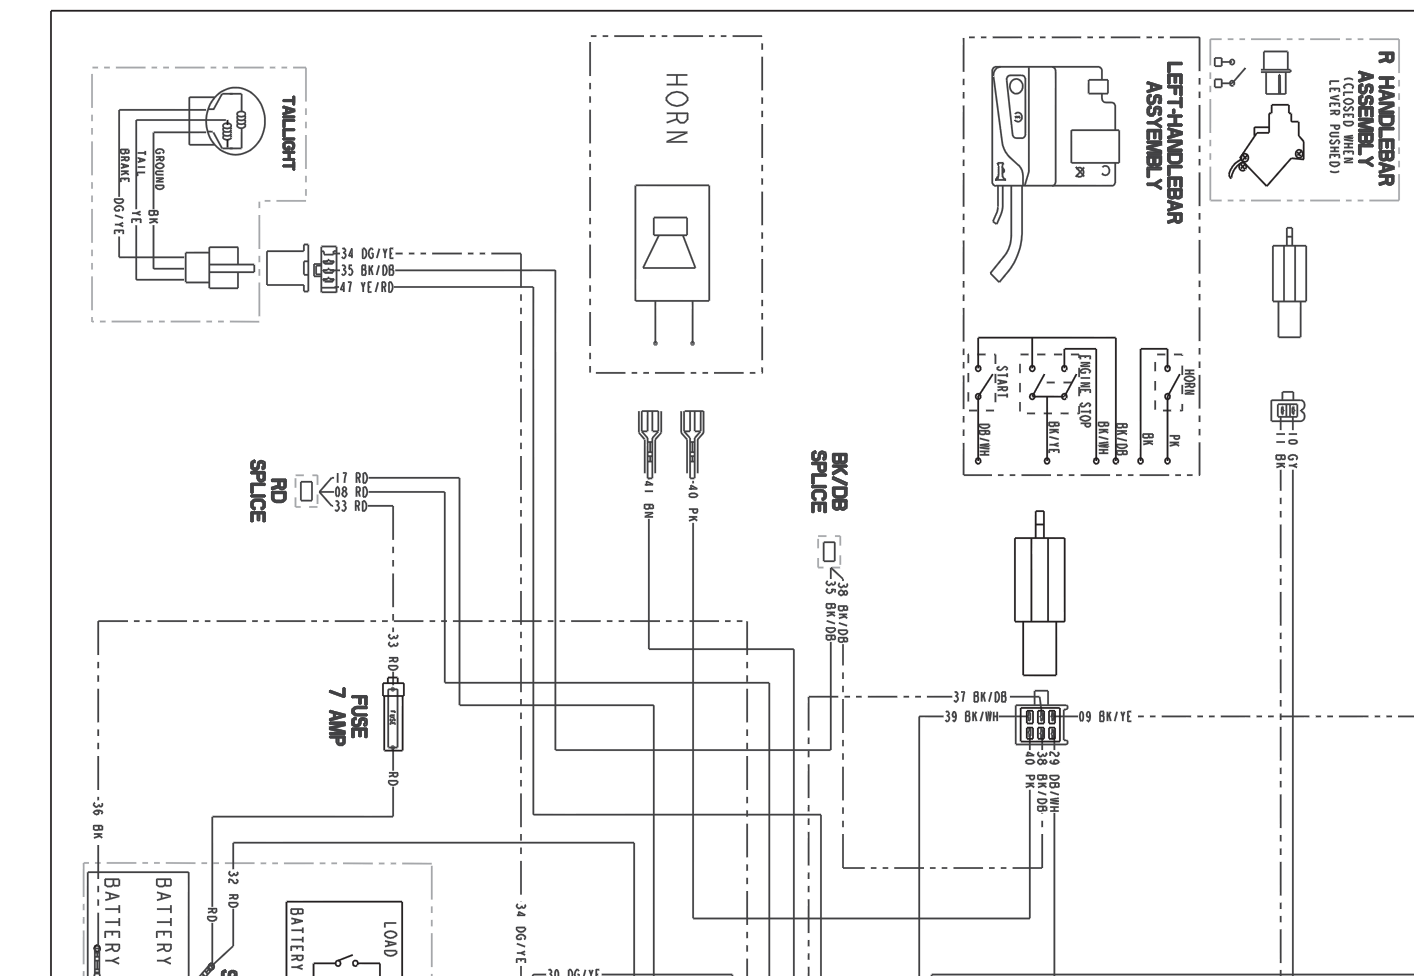 polaris trail boss 330 wiring diagram detailed schematic diagrams rh 4rmotorsports com polaris outlaw 50 wiring diagram 2008 polaris outlaw 525 wiring diagram